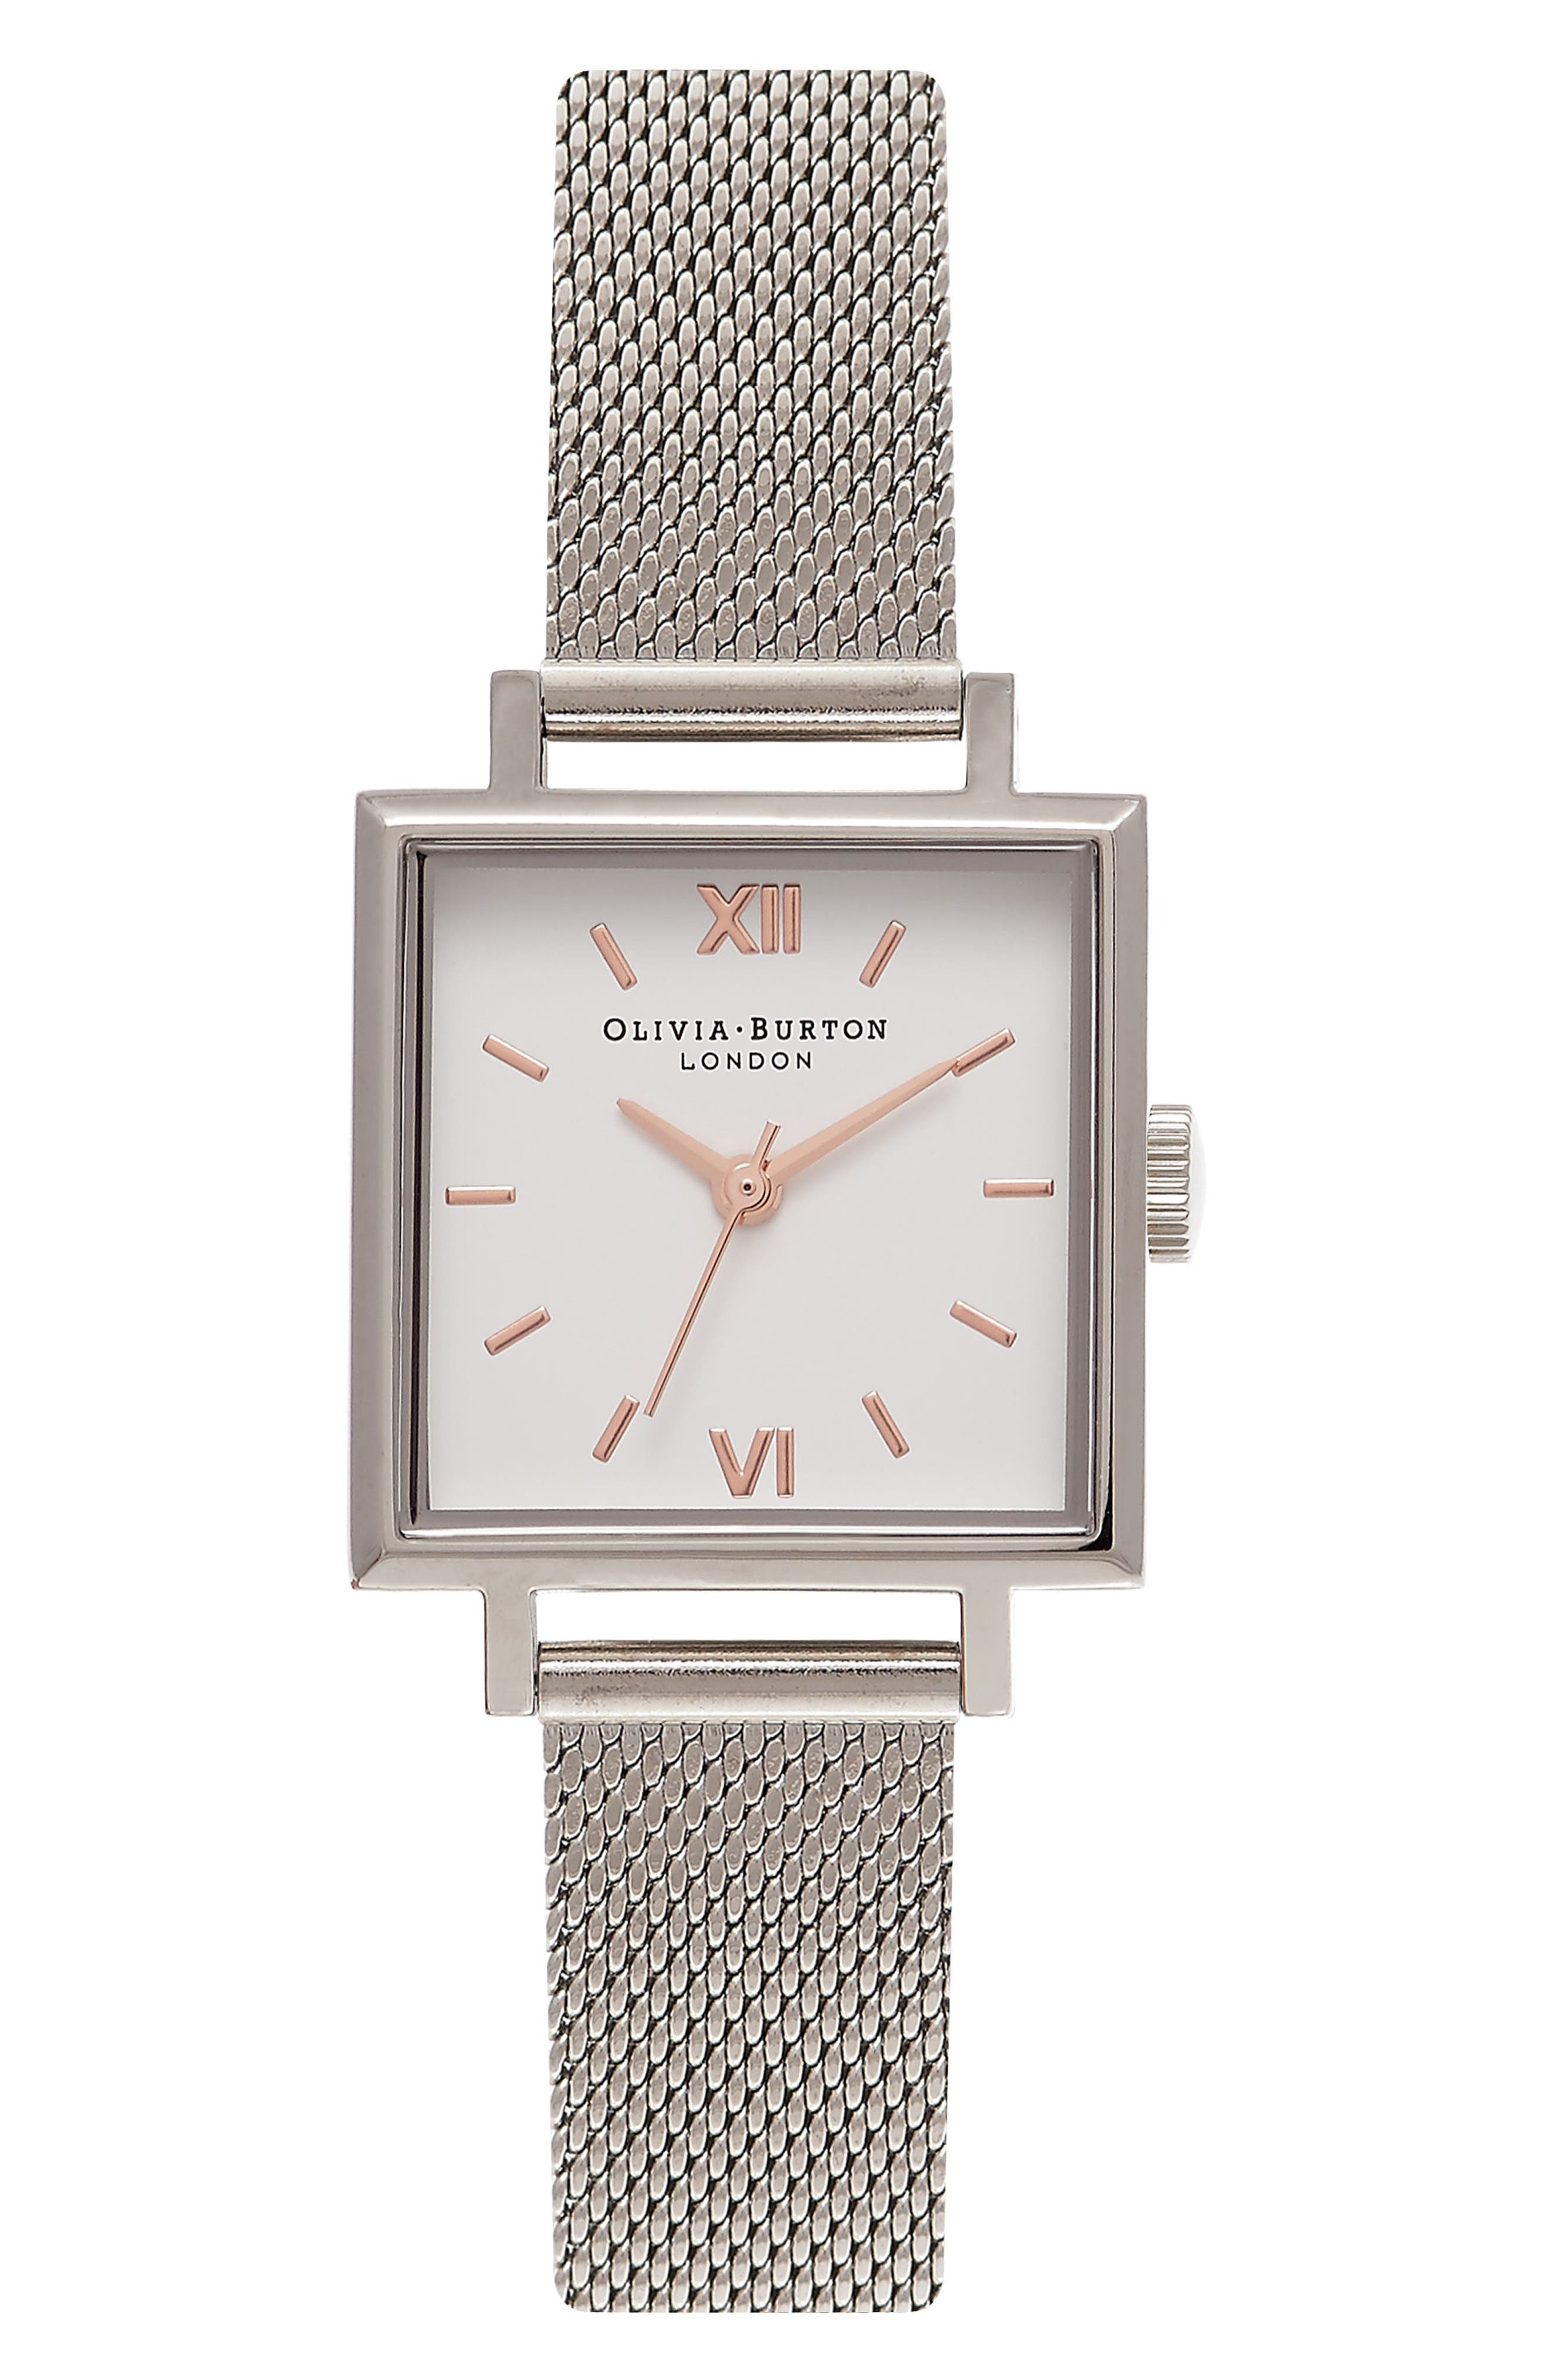 Midi Square Mesh Strap Watch, 22.5mm,                             Main thumbnail 1, color,                             040